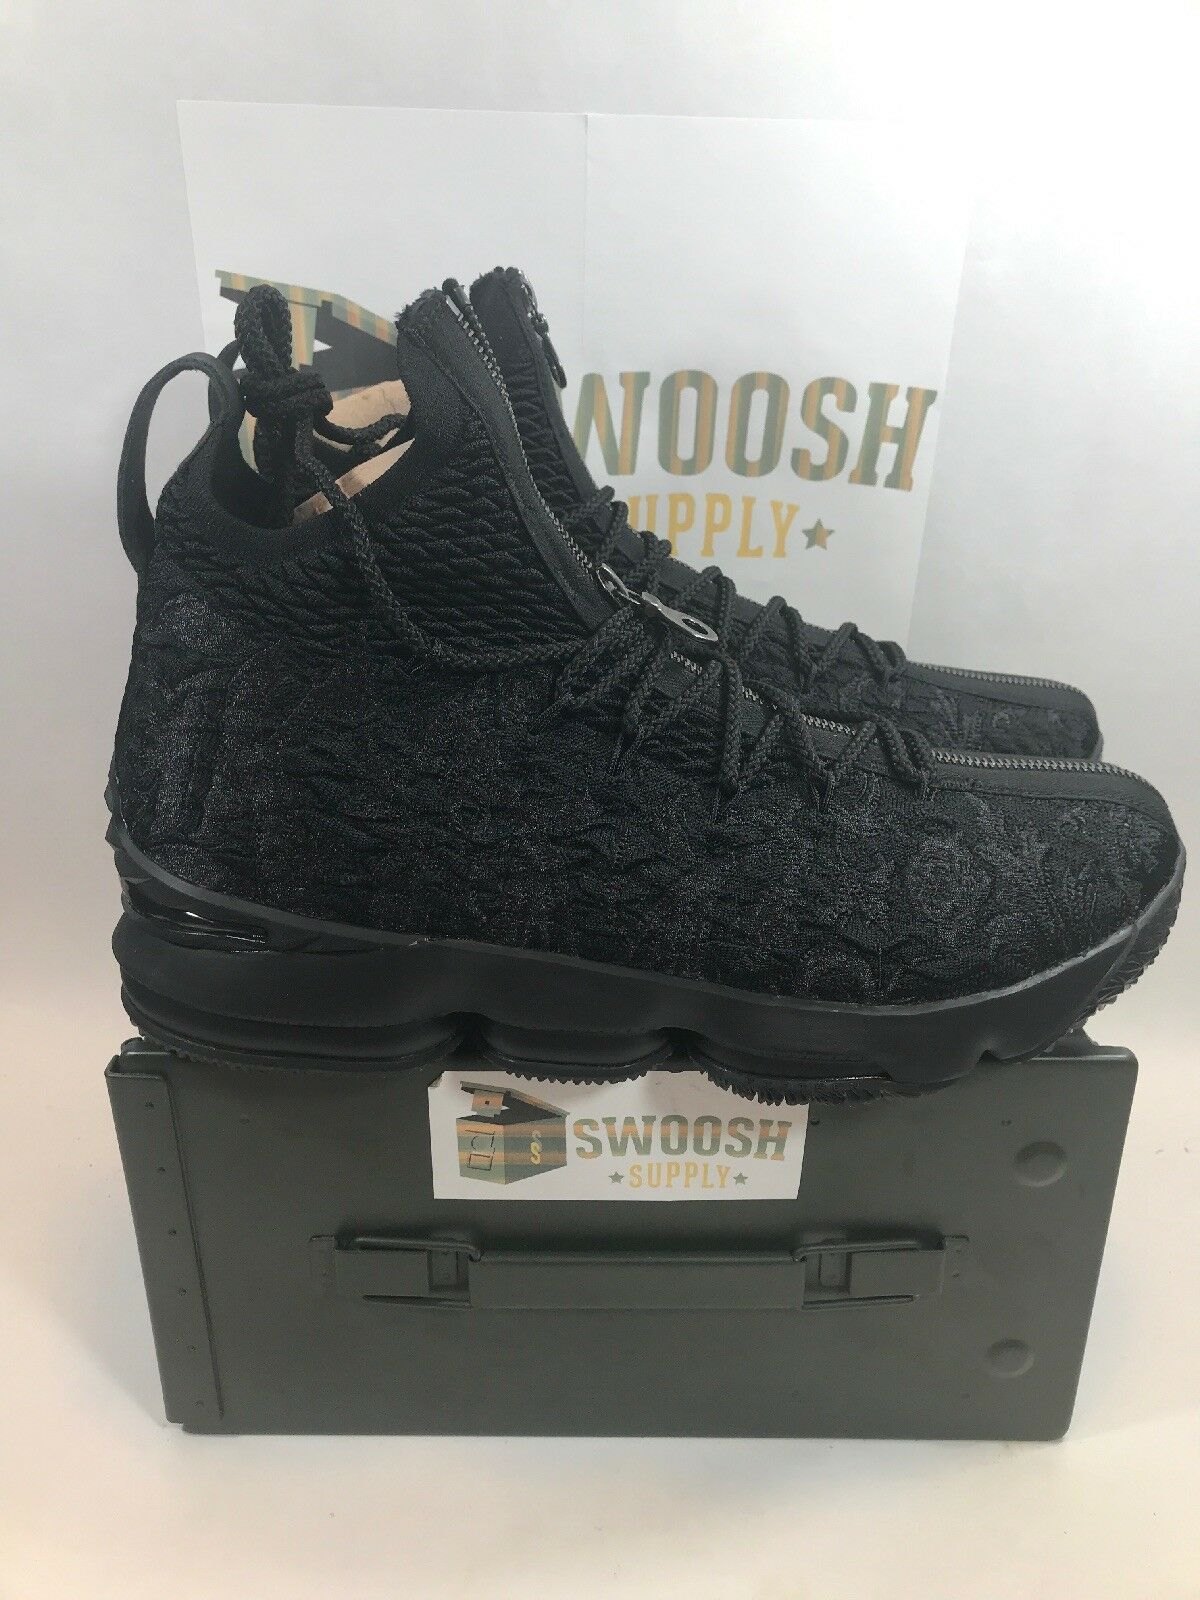 Nike LeBron 15 XV Suit Kith Ronnie Fieg Perf Suit XV of Armor Black Size 11.5 AJ3936-001 360297